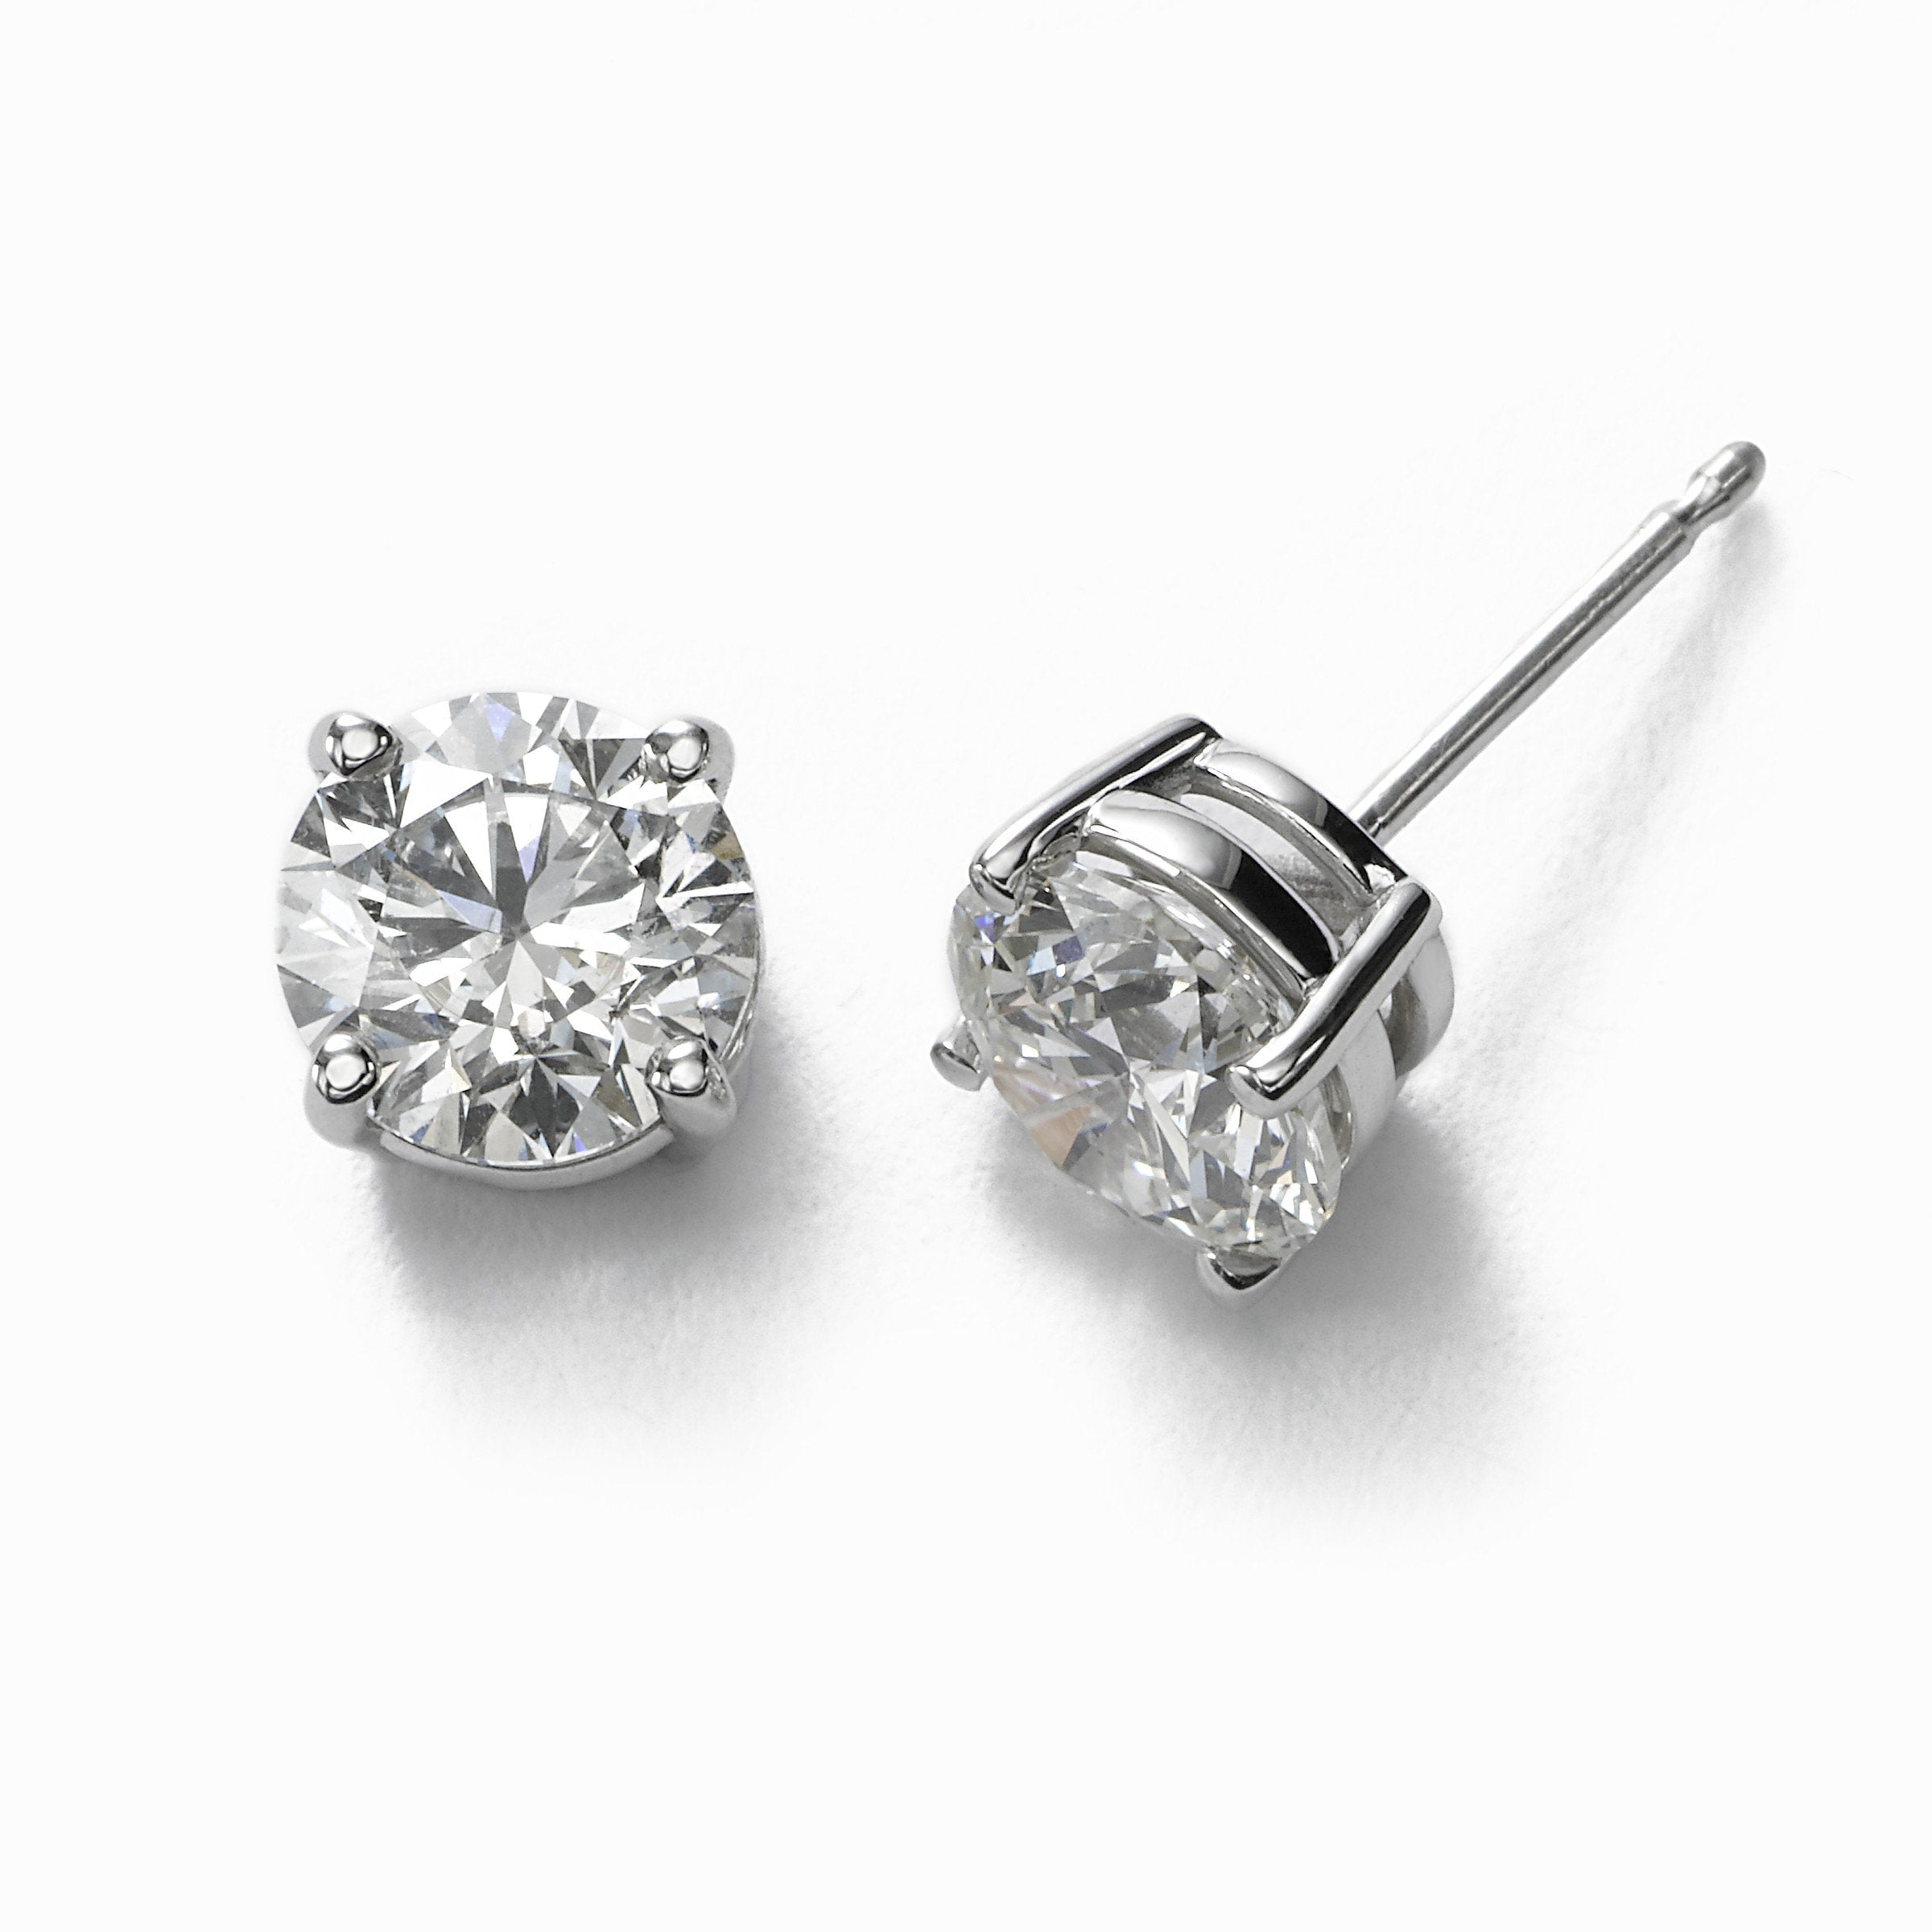 Diamond Stud Earrings, 1.77 Carats Total, H/I/J-I2, 14K White Gold